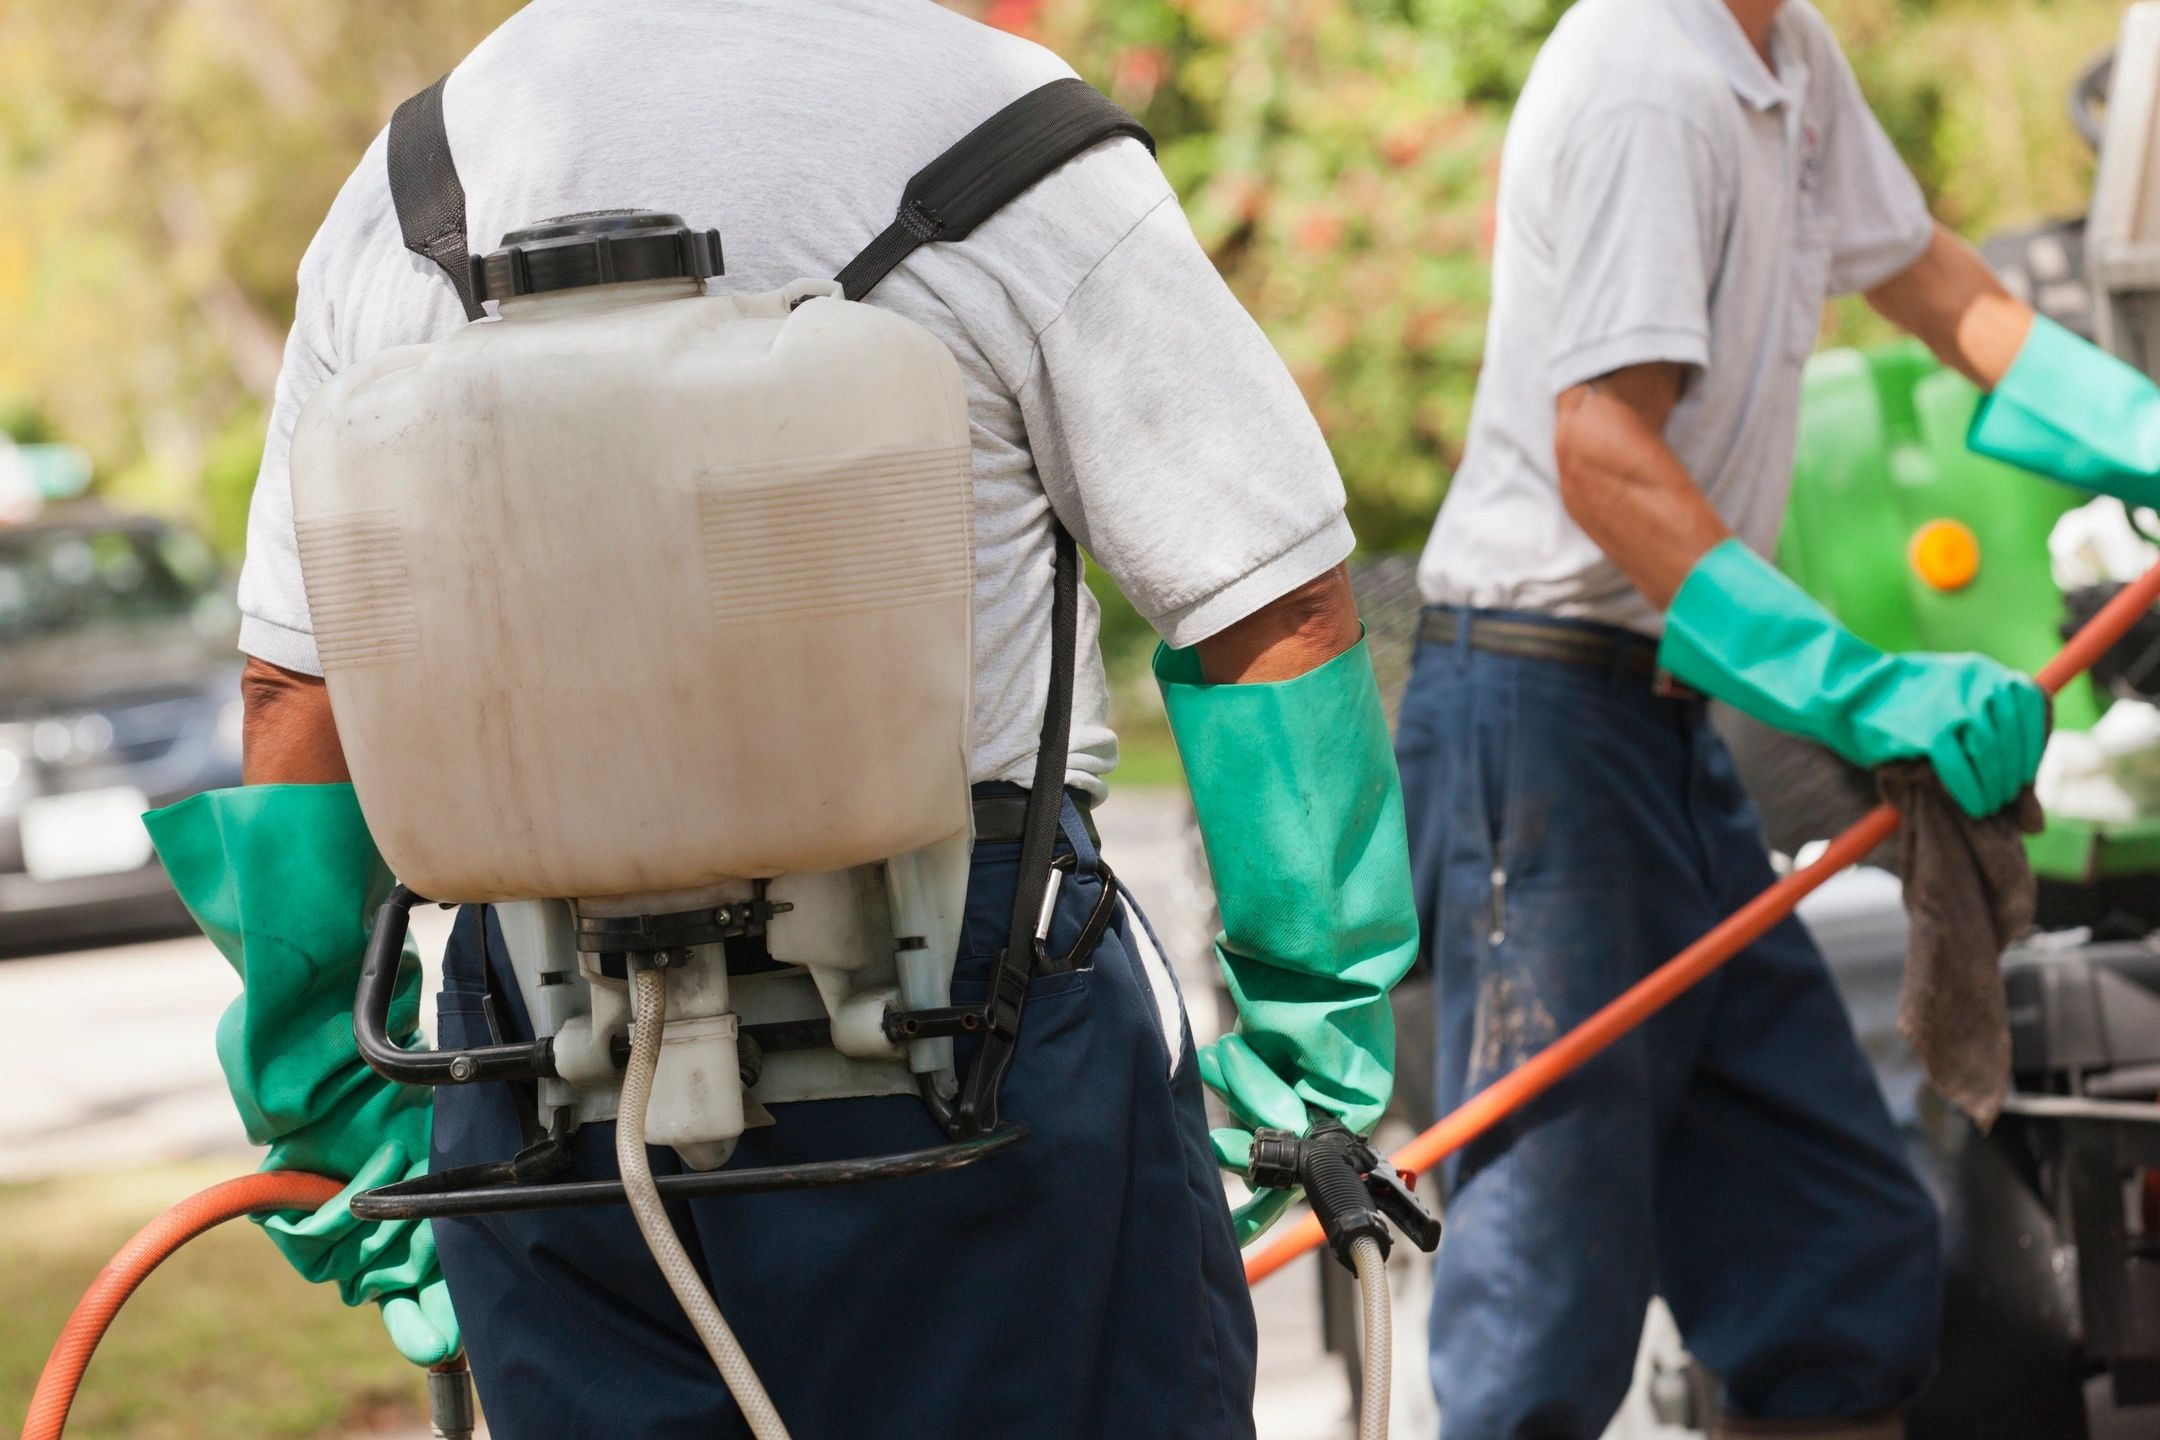 pest control services in Coimbatore, pest control services in Erode, pest control services in Salem,